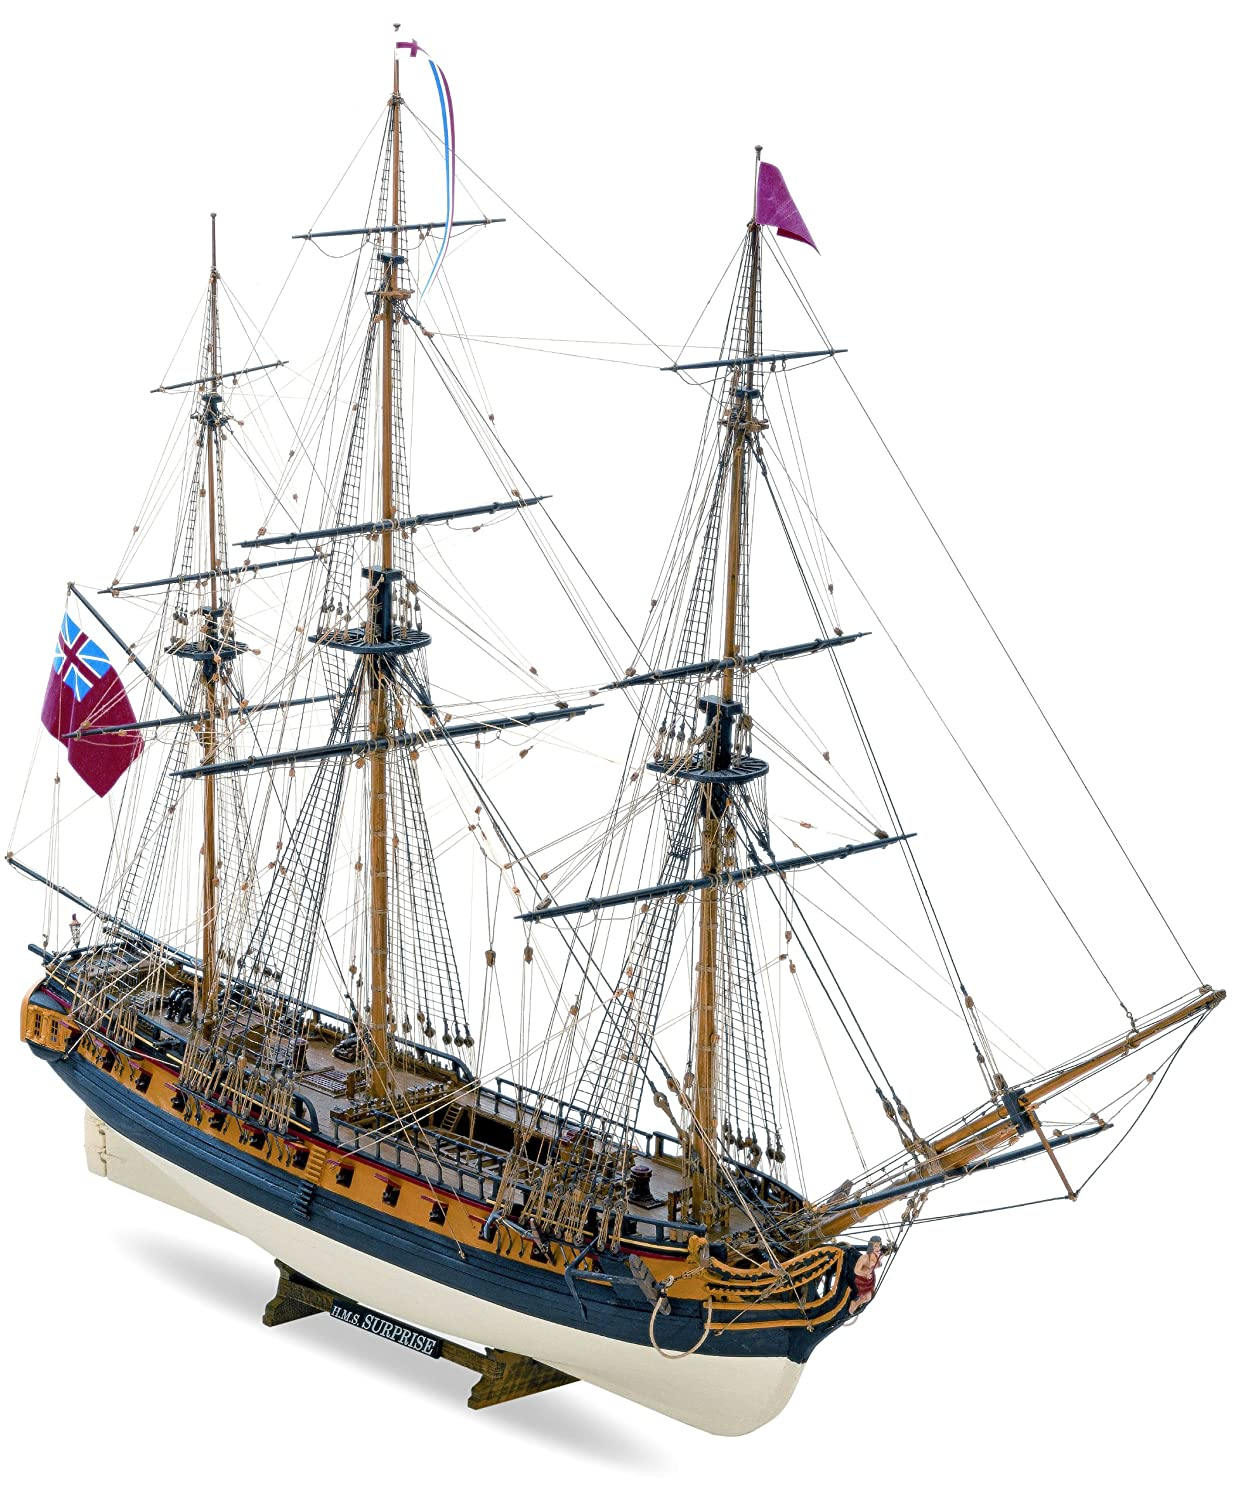 Amazon.com: Mamoli 58 1 by 75 HMS Surprise 3 - Masted 1799 ...